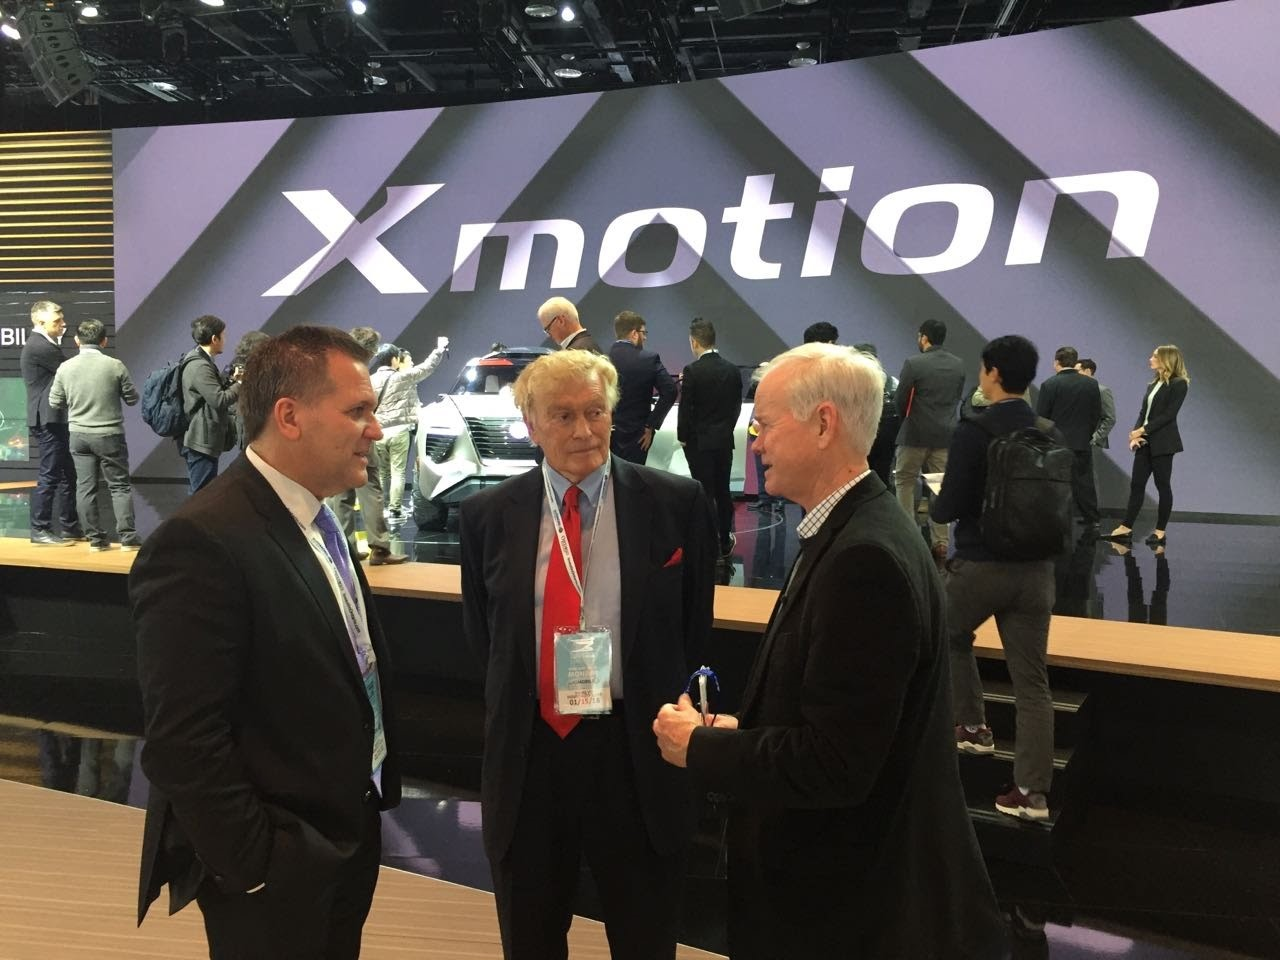 LIASE Group's Vic Doolan (middle) with a renowned Detroit auto journalist at the Xmotion Nissan booth.